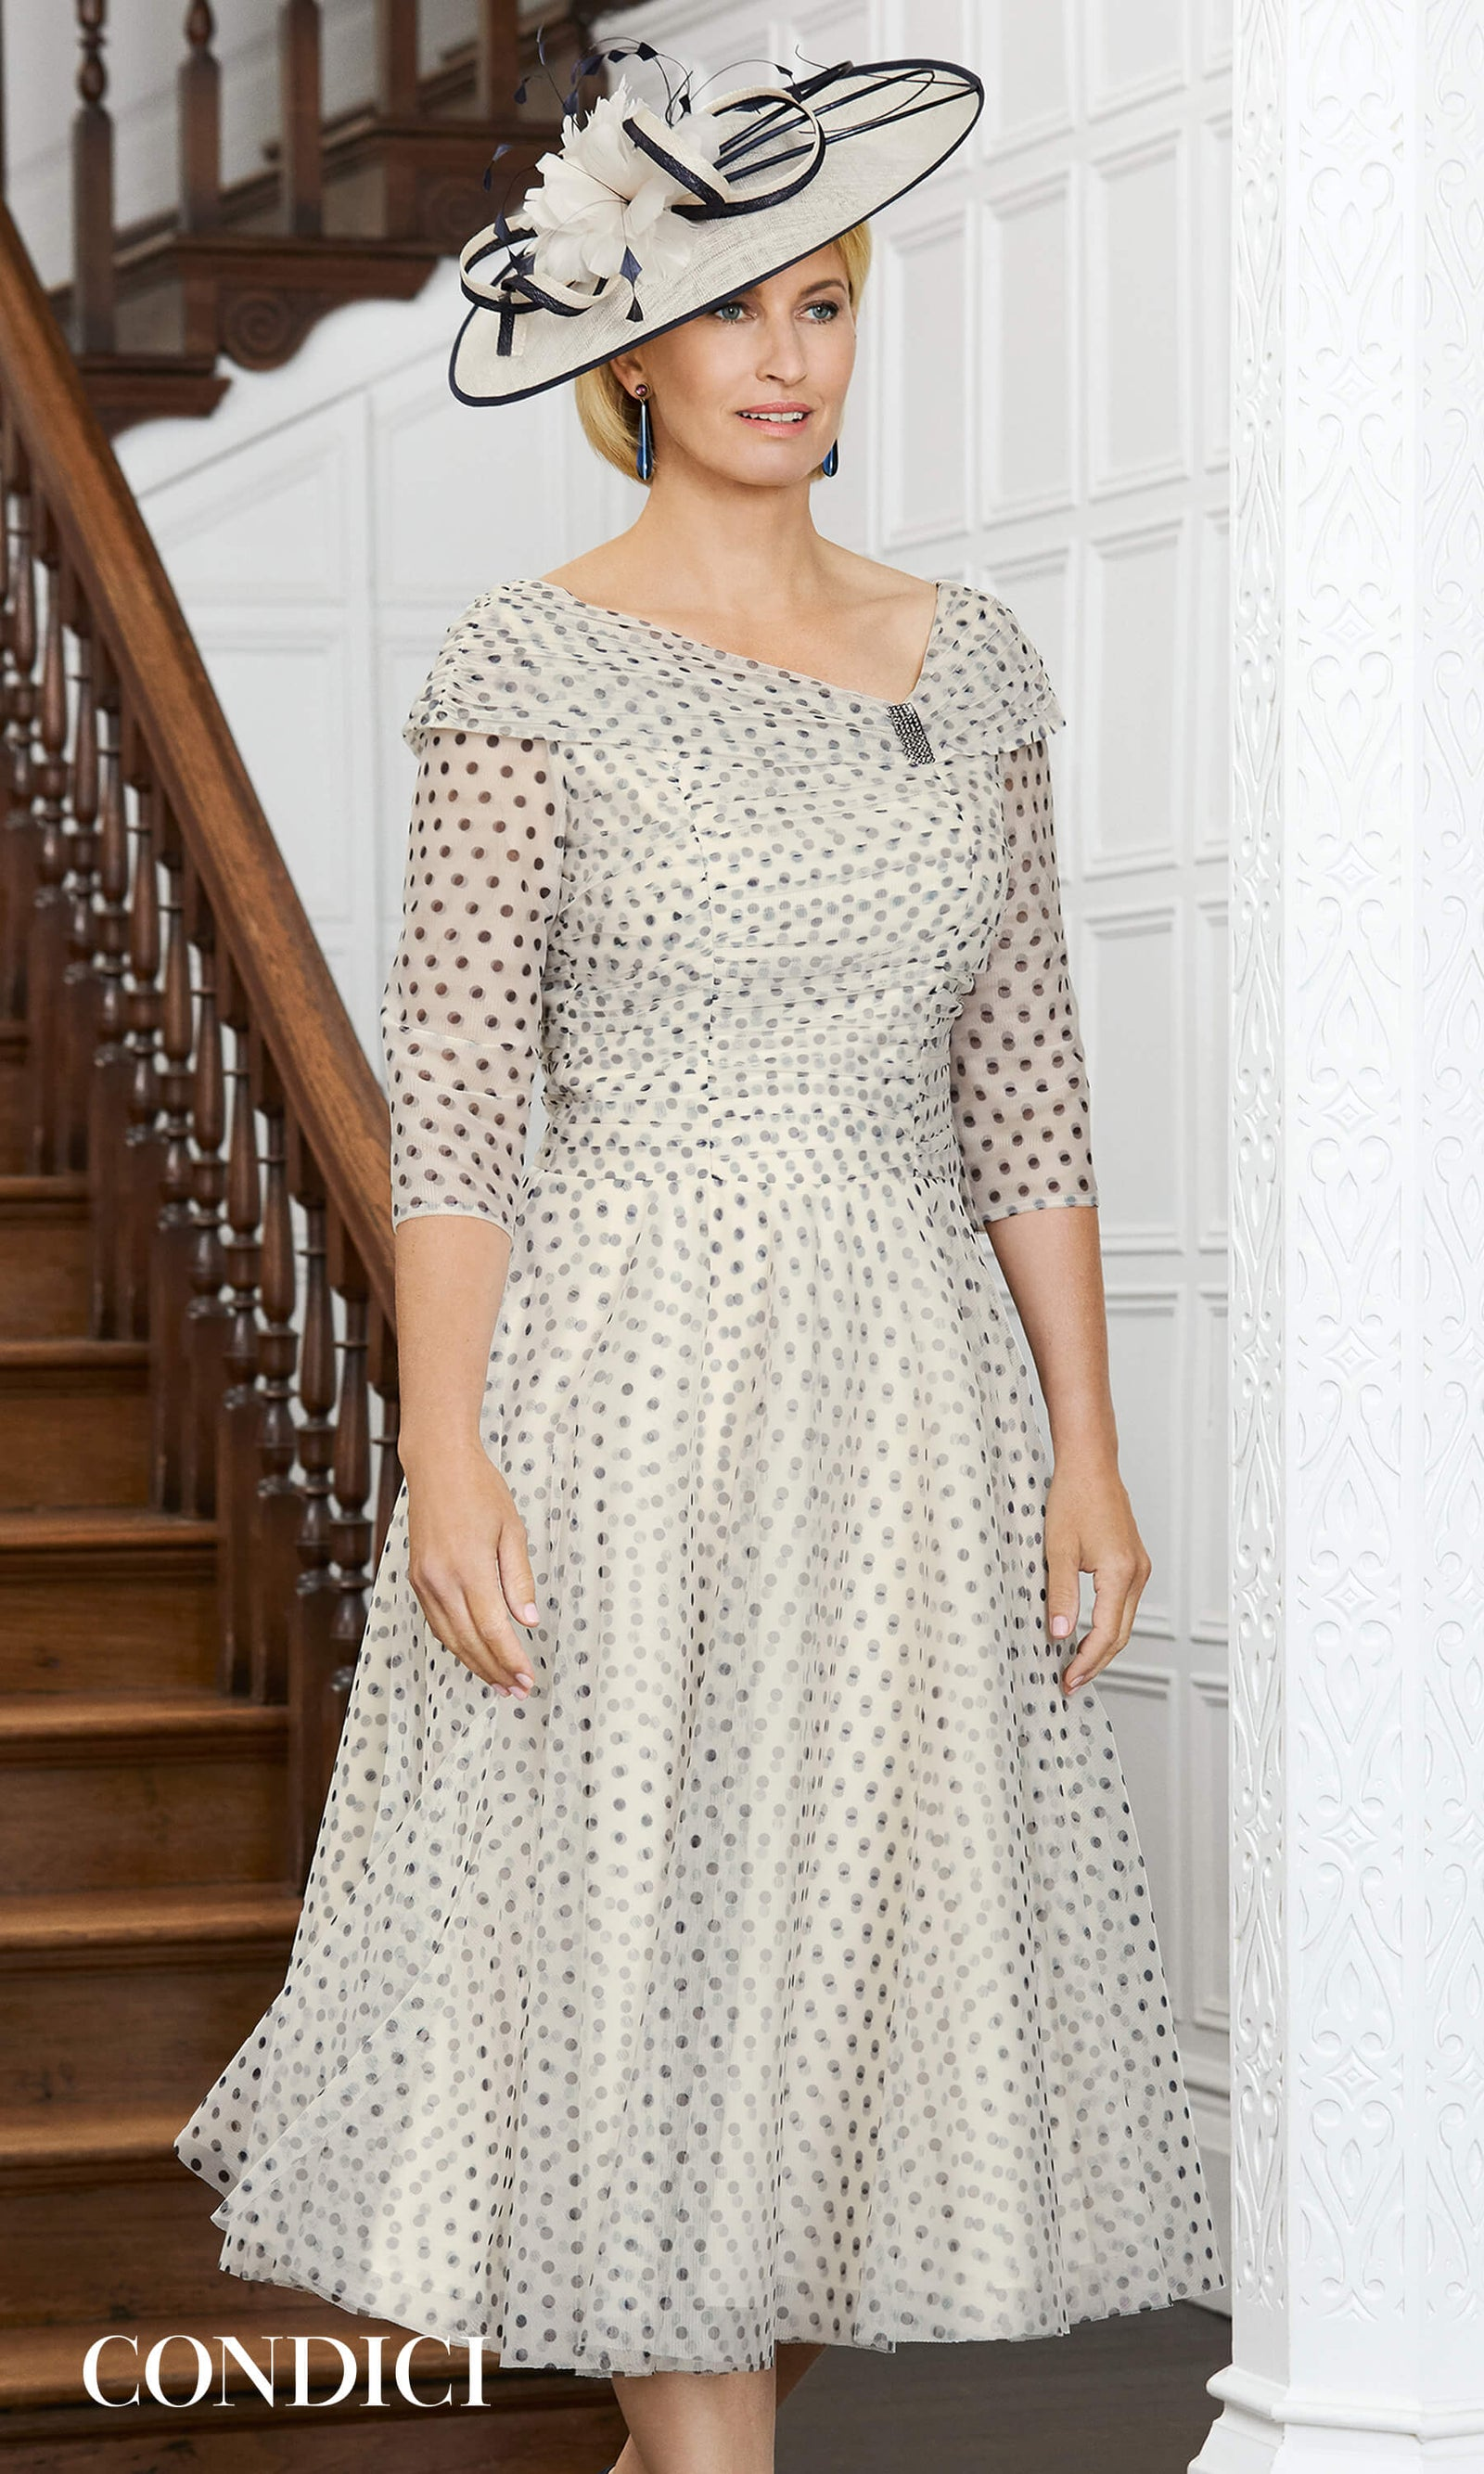 71007 Alabaster Condici Net Occasion Dress With Sleeves - Fab Frocks